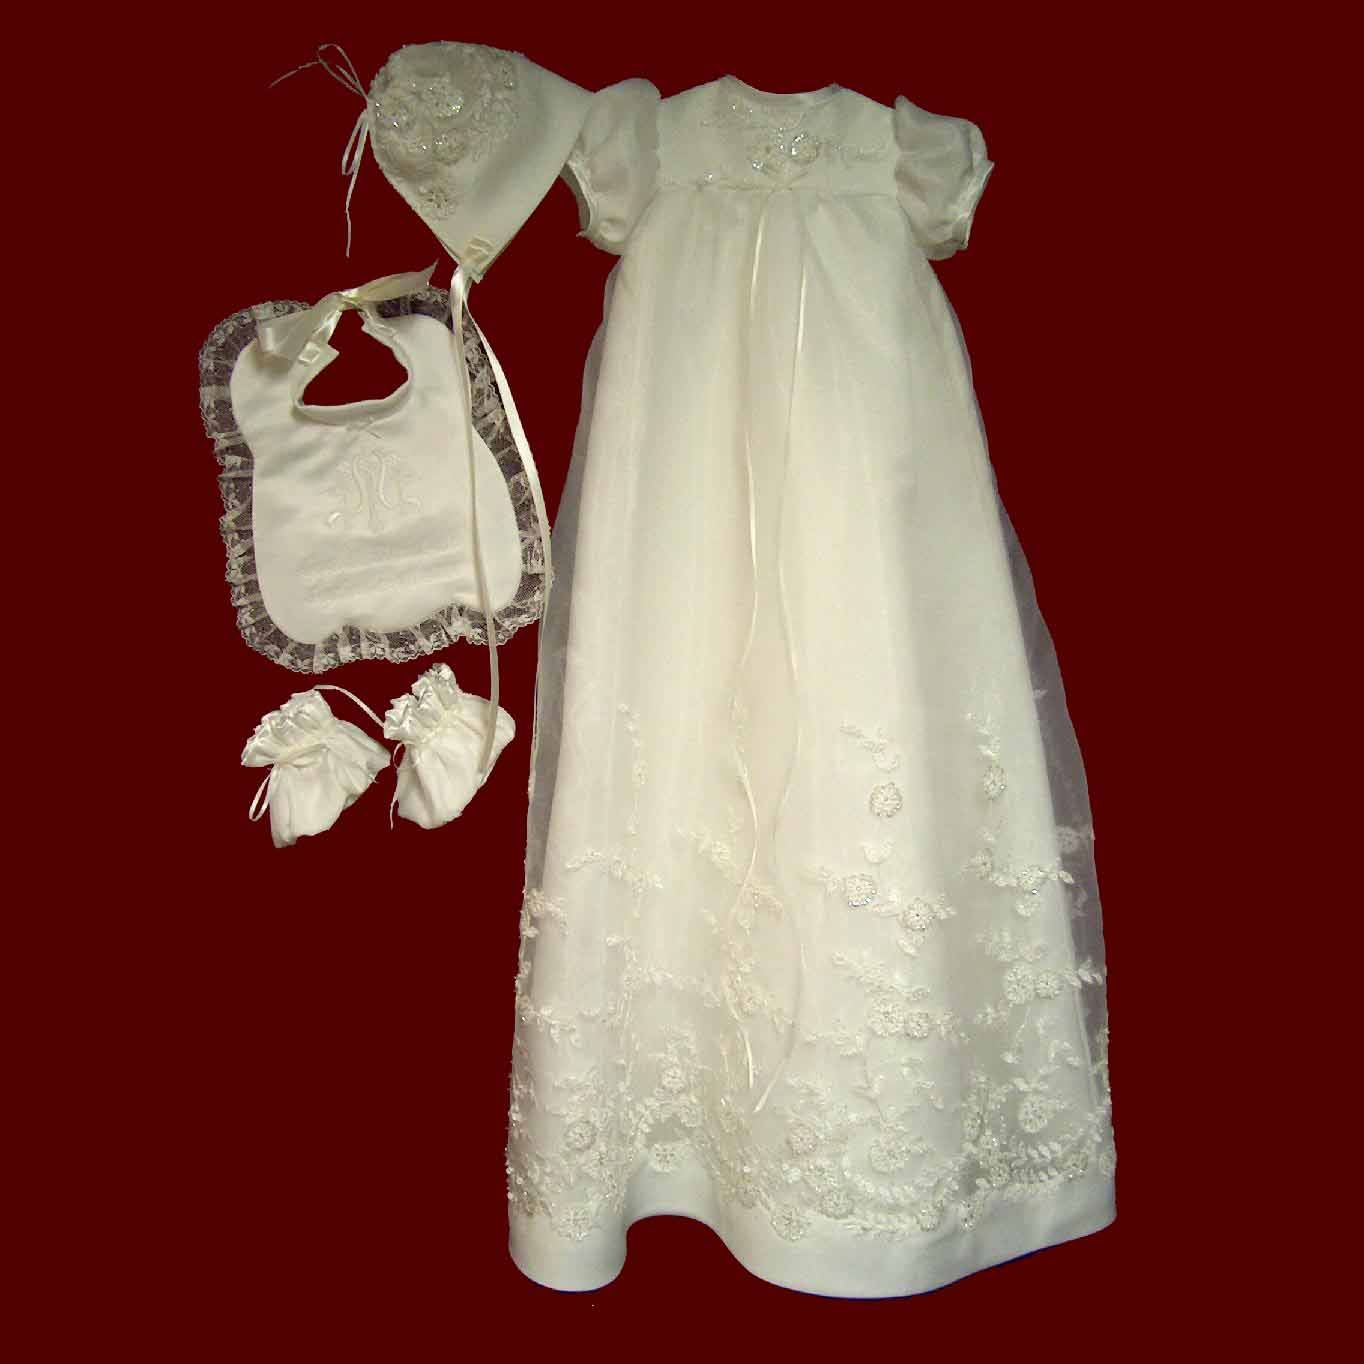 Christening Gowns From Wedding Dresses: Made From Your Wedding Dress!